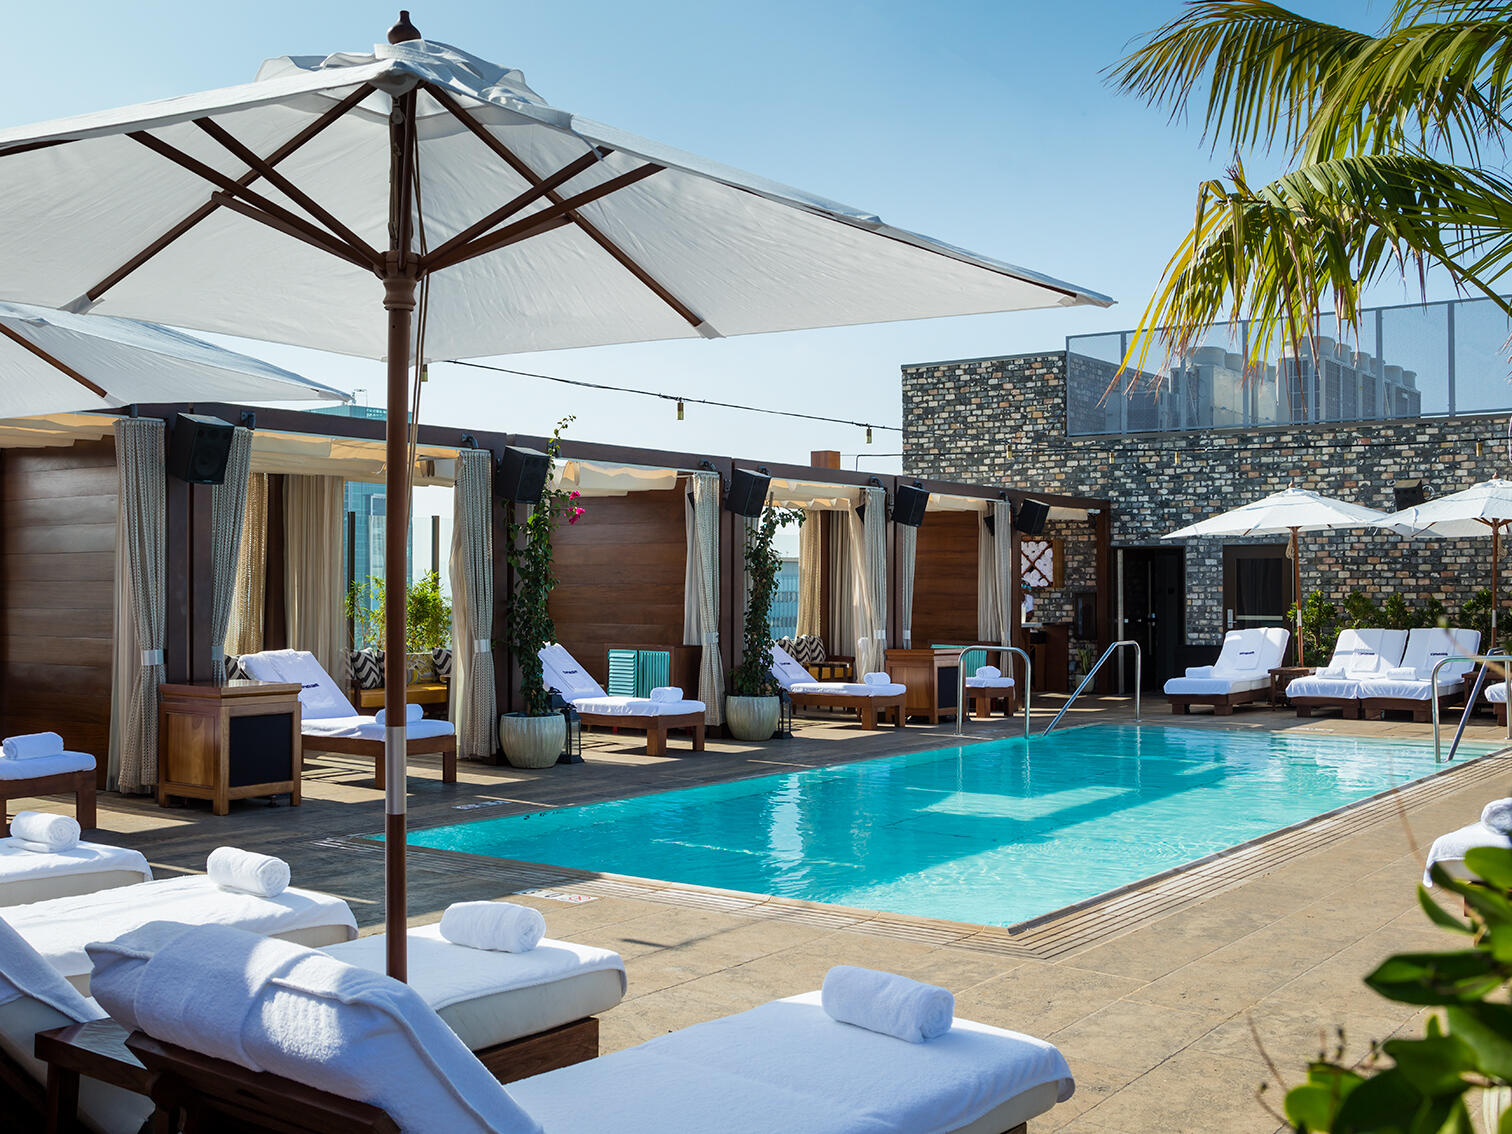 Pool setting at Dream Hollywood; view of pool and white reclining poolside chaises